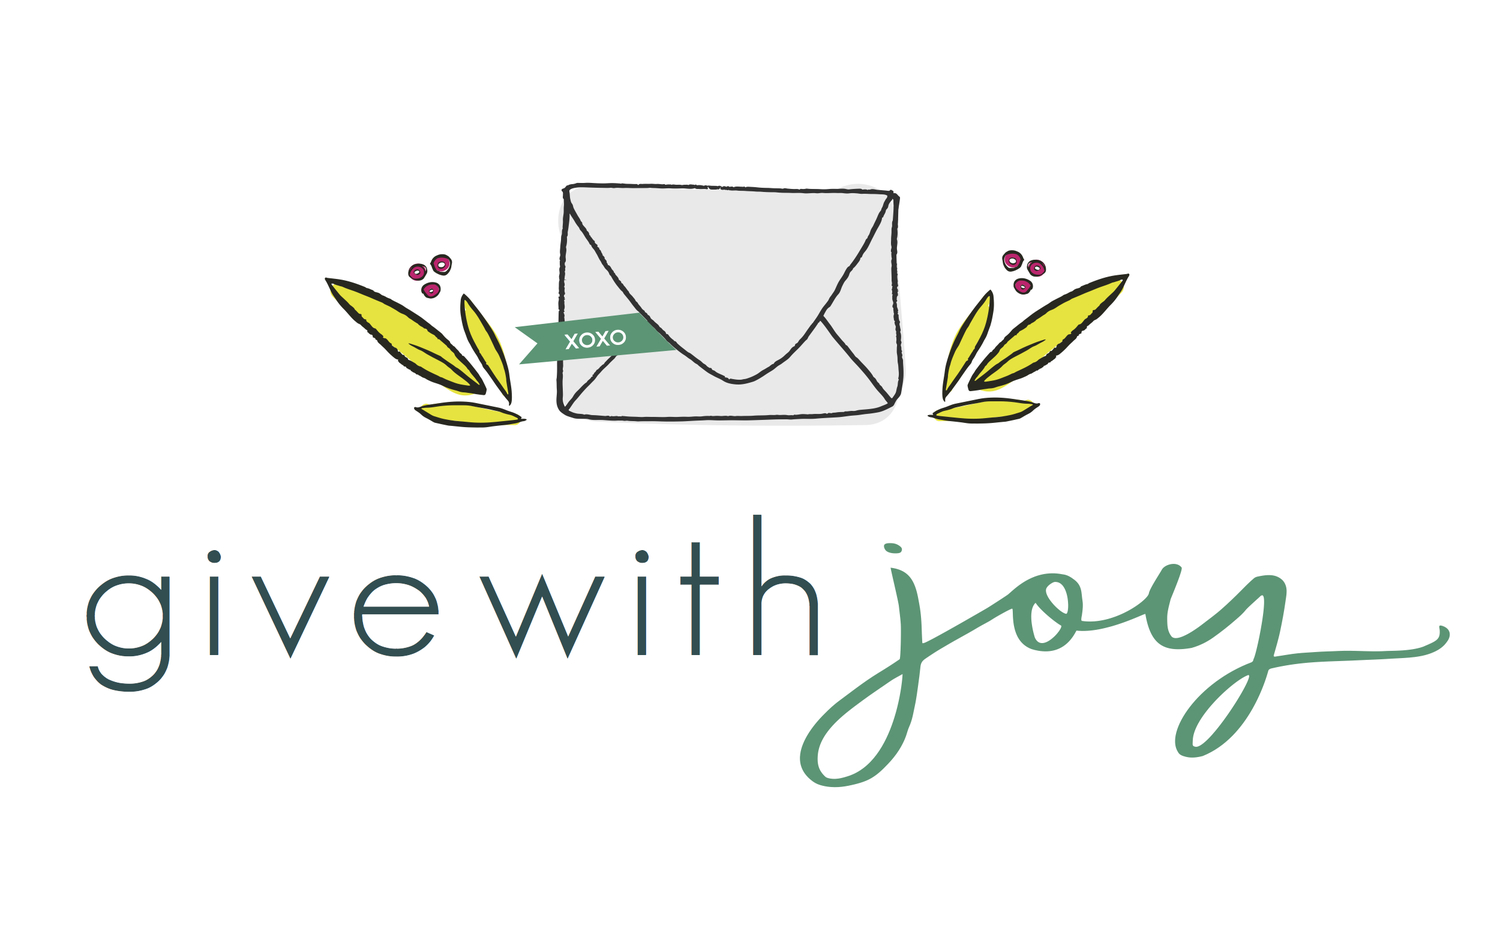 give with joy